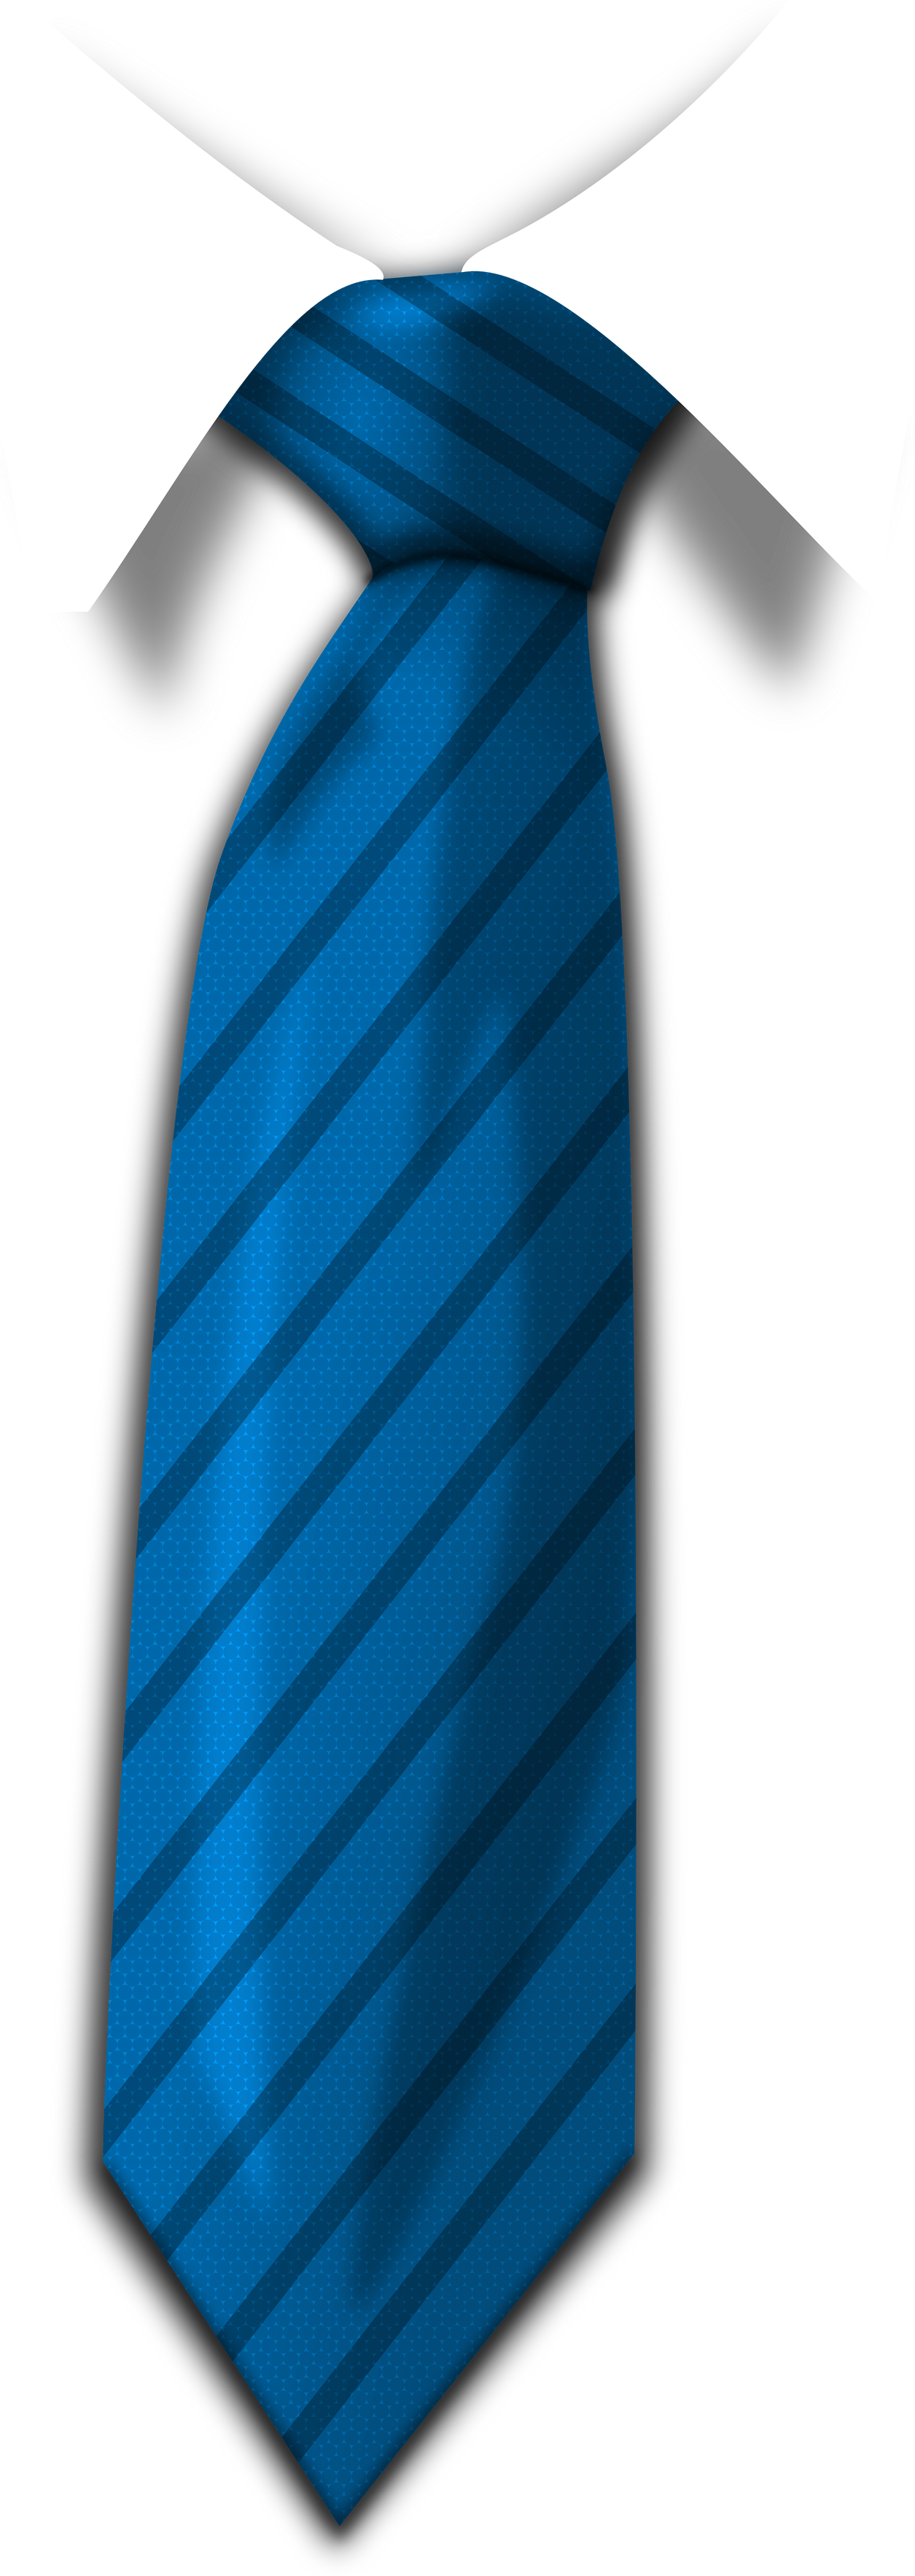 Tie Transparent PNG Sticker - PNG HD Tie